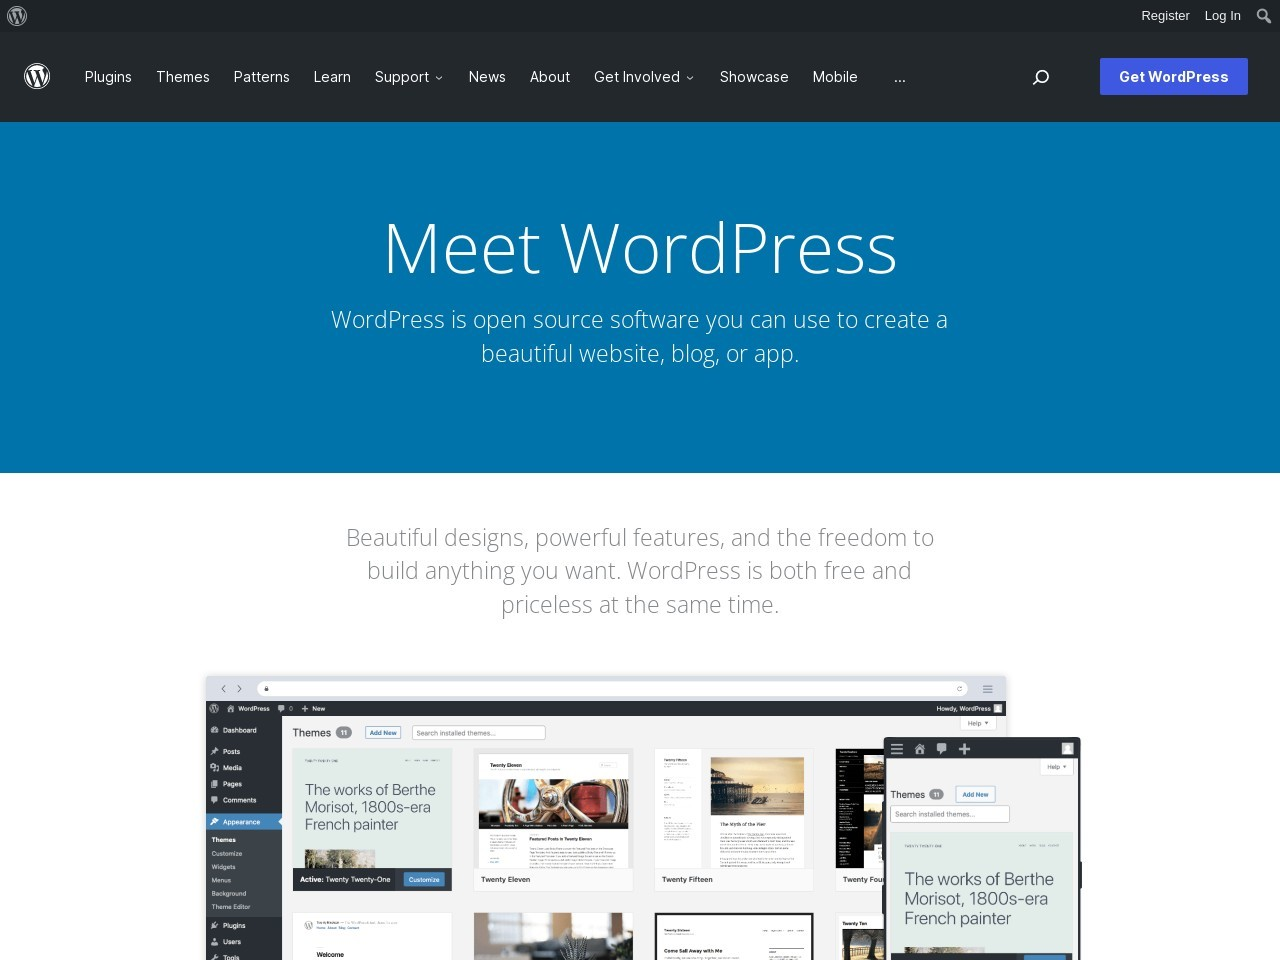 https://wordpress.org/plugins/wpshop/